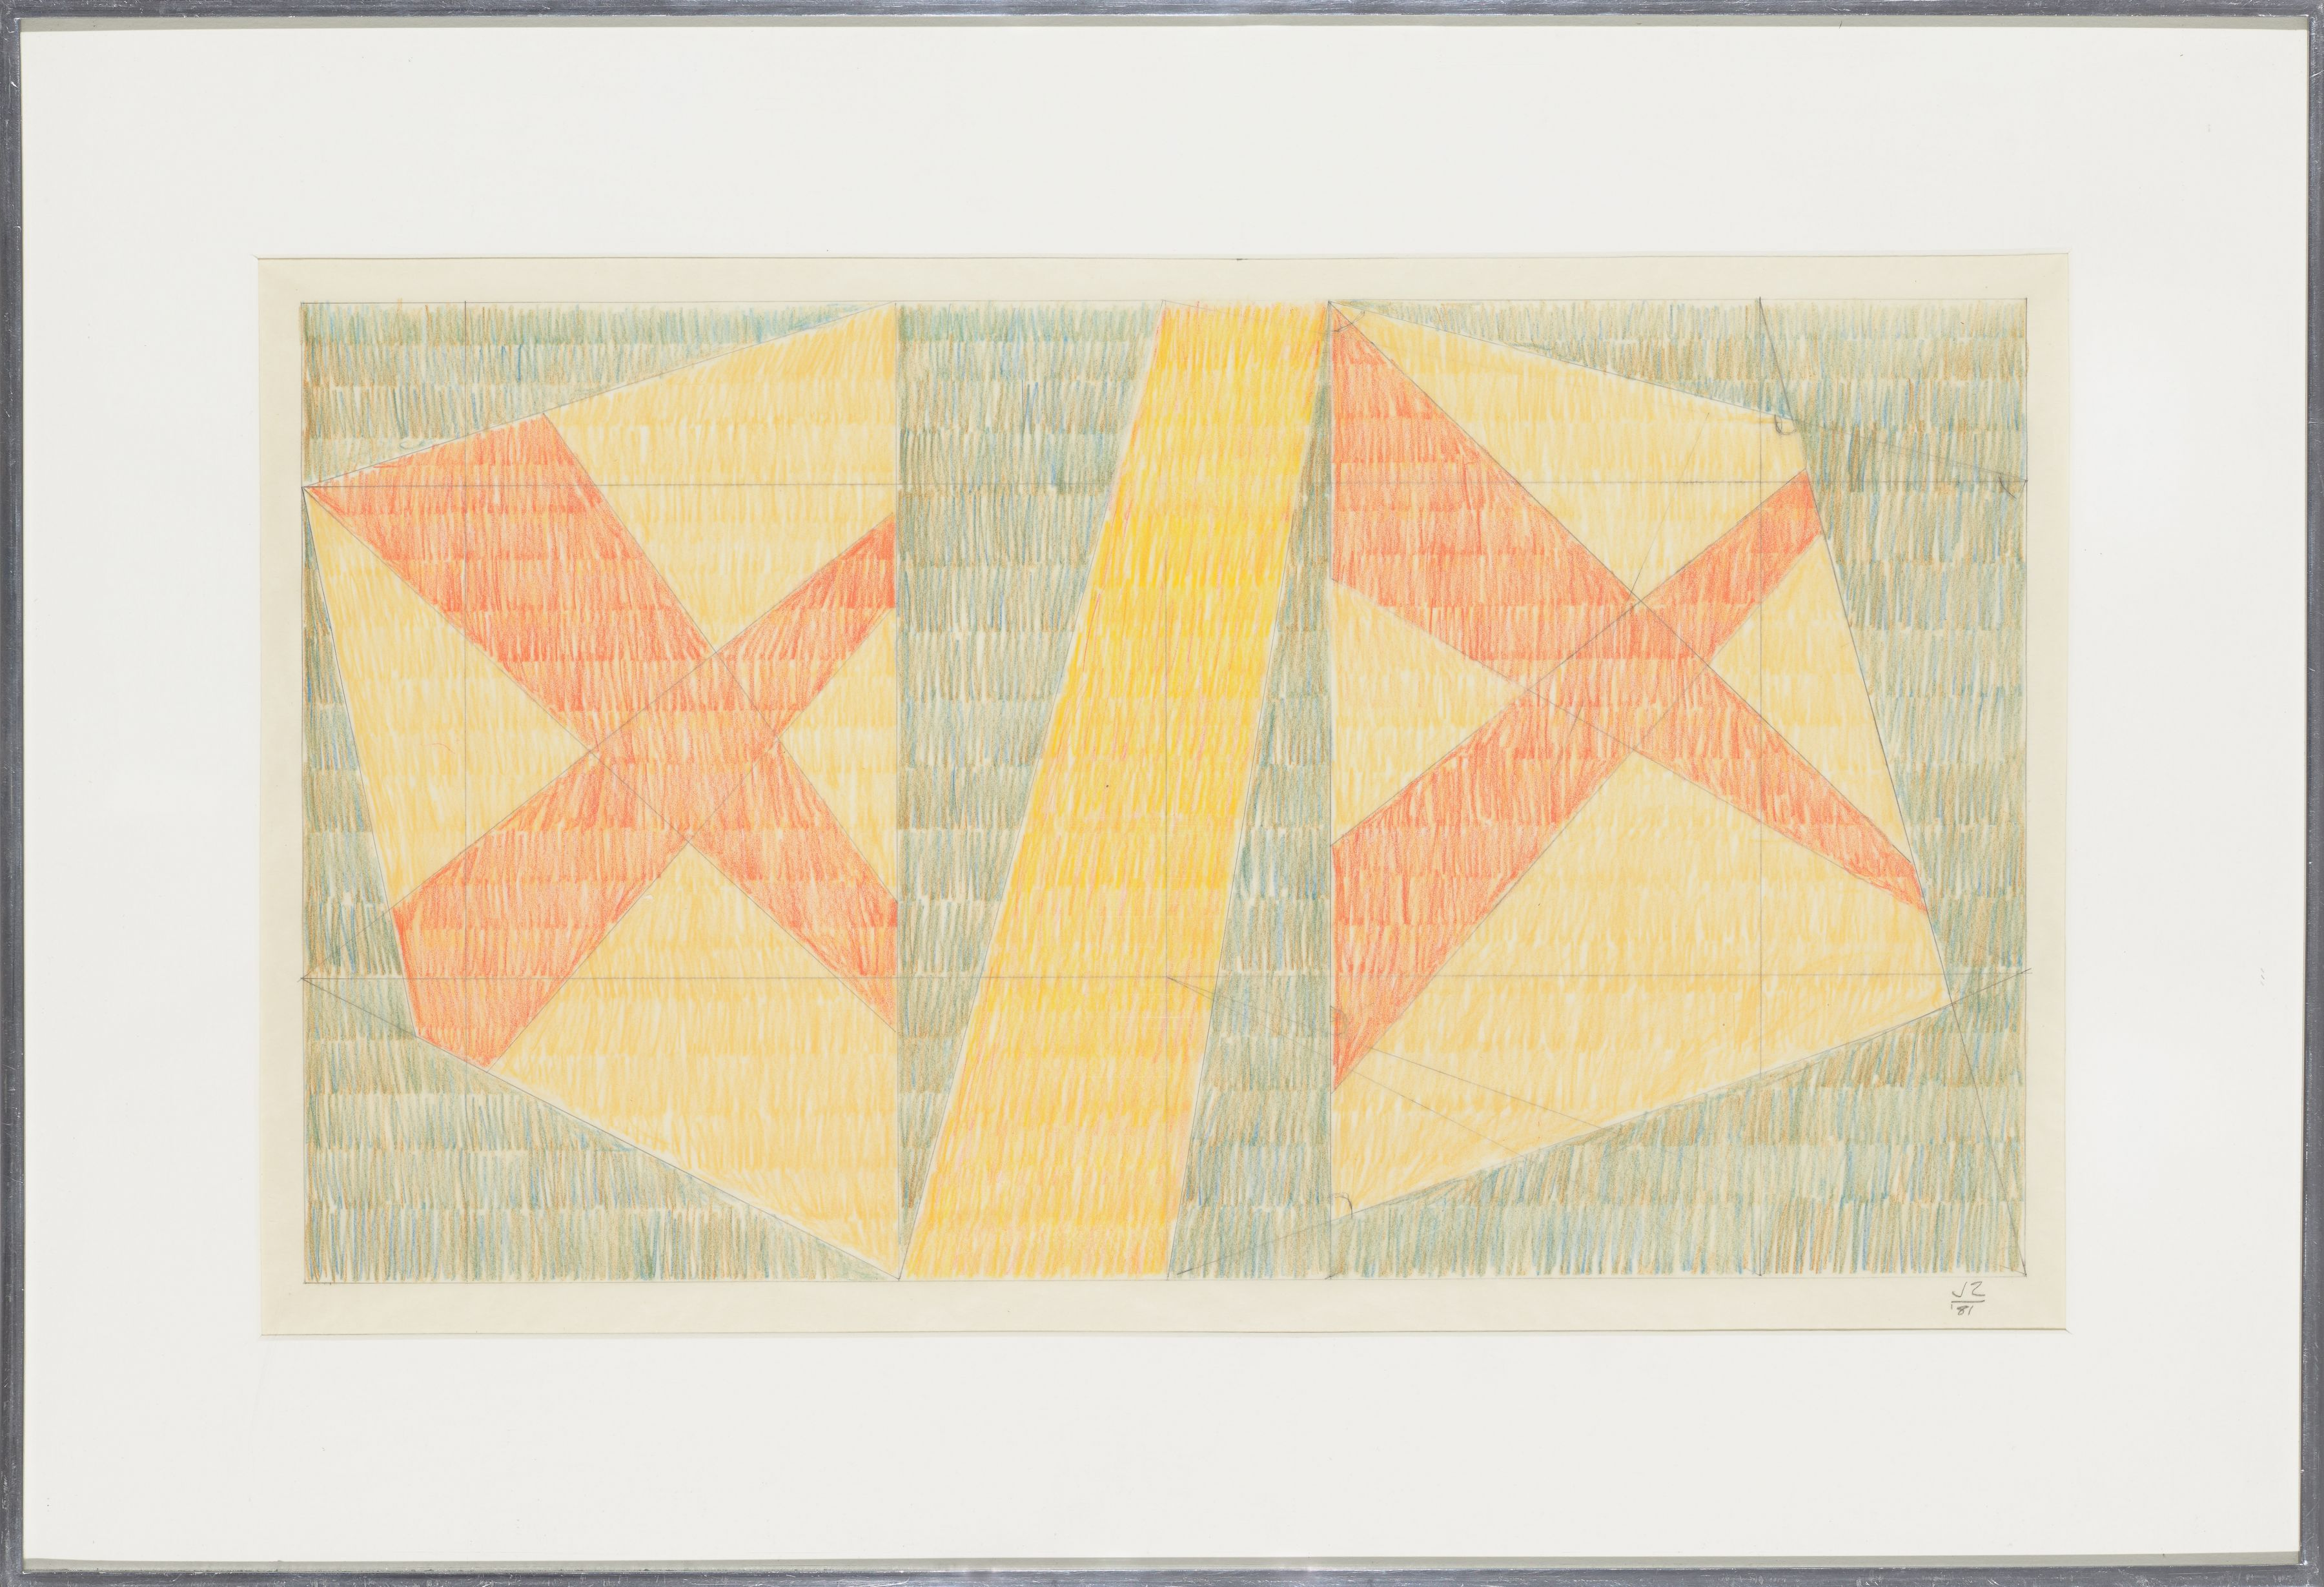 Untitled H, 1981, Colored pencil on vellum